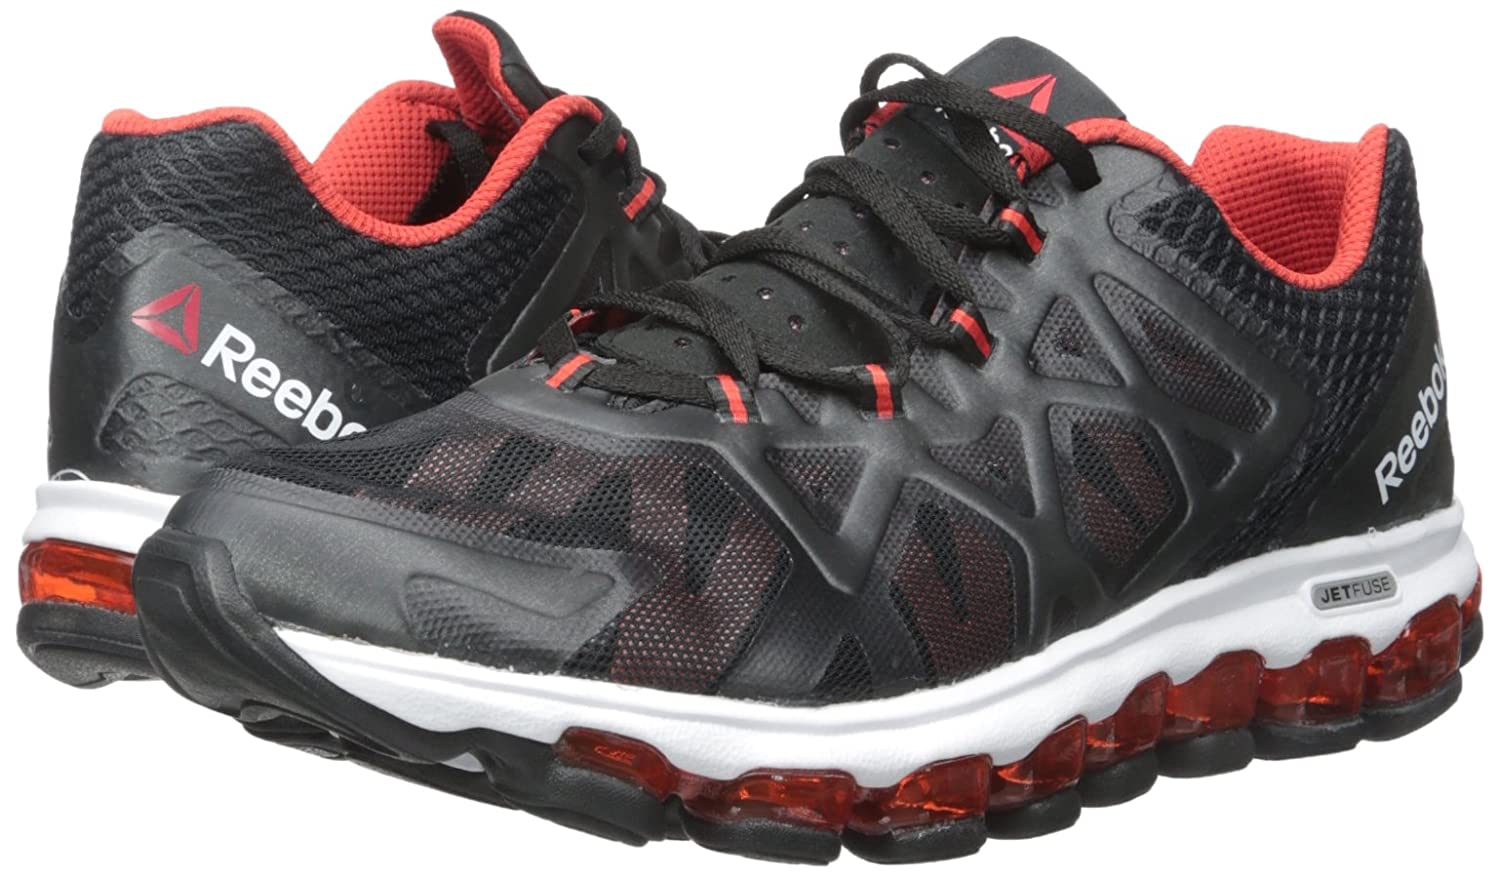 best website 16a0e 5b0fc best reebok jetfuse great condition shoes athletic shoes a1bde 640e8   coupon amazon reebok mens zjet burst running shoe black motor red white 8.5  m us road